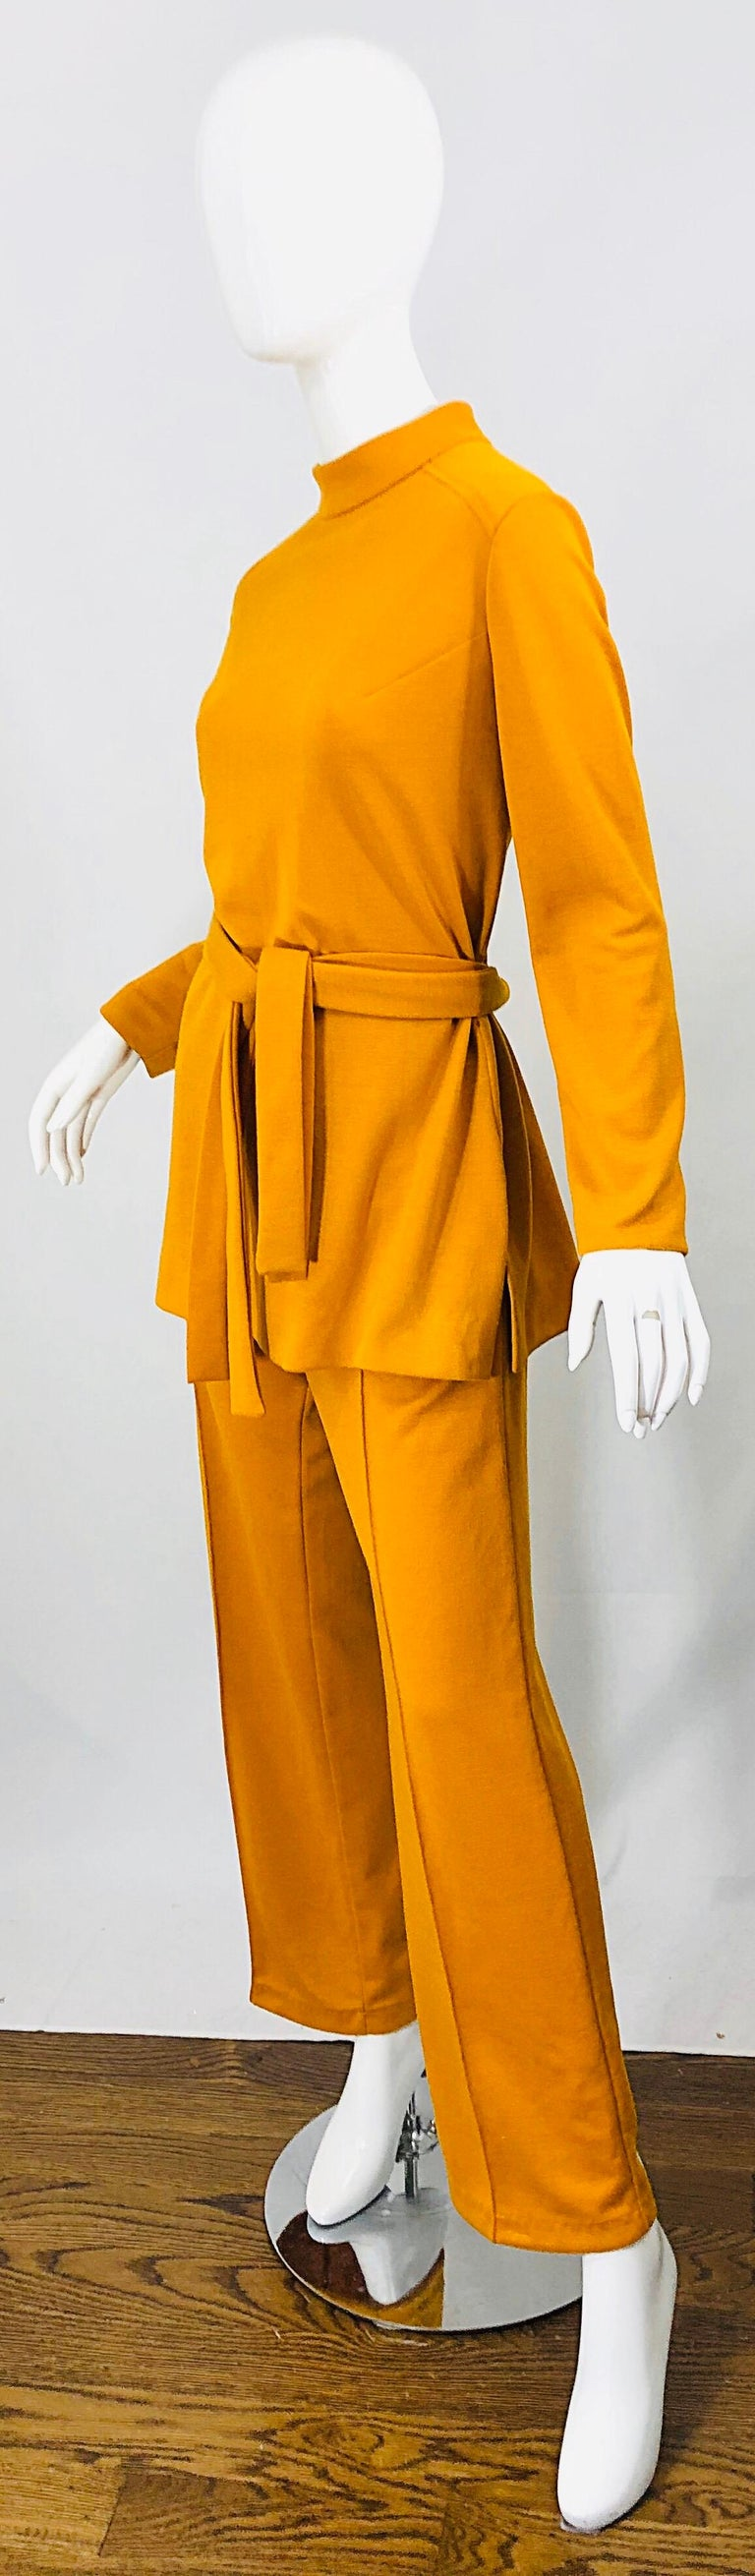 1970s Marigold Mustard Yellow Four Piece Vintage 70s Knit Shirt + Pants + Belt For Sale 6